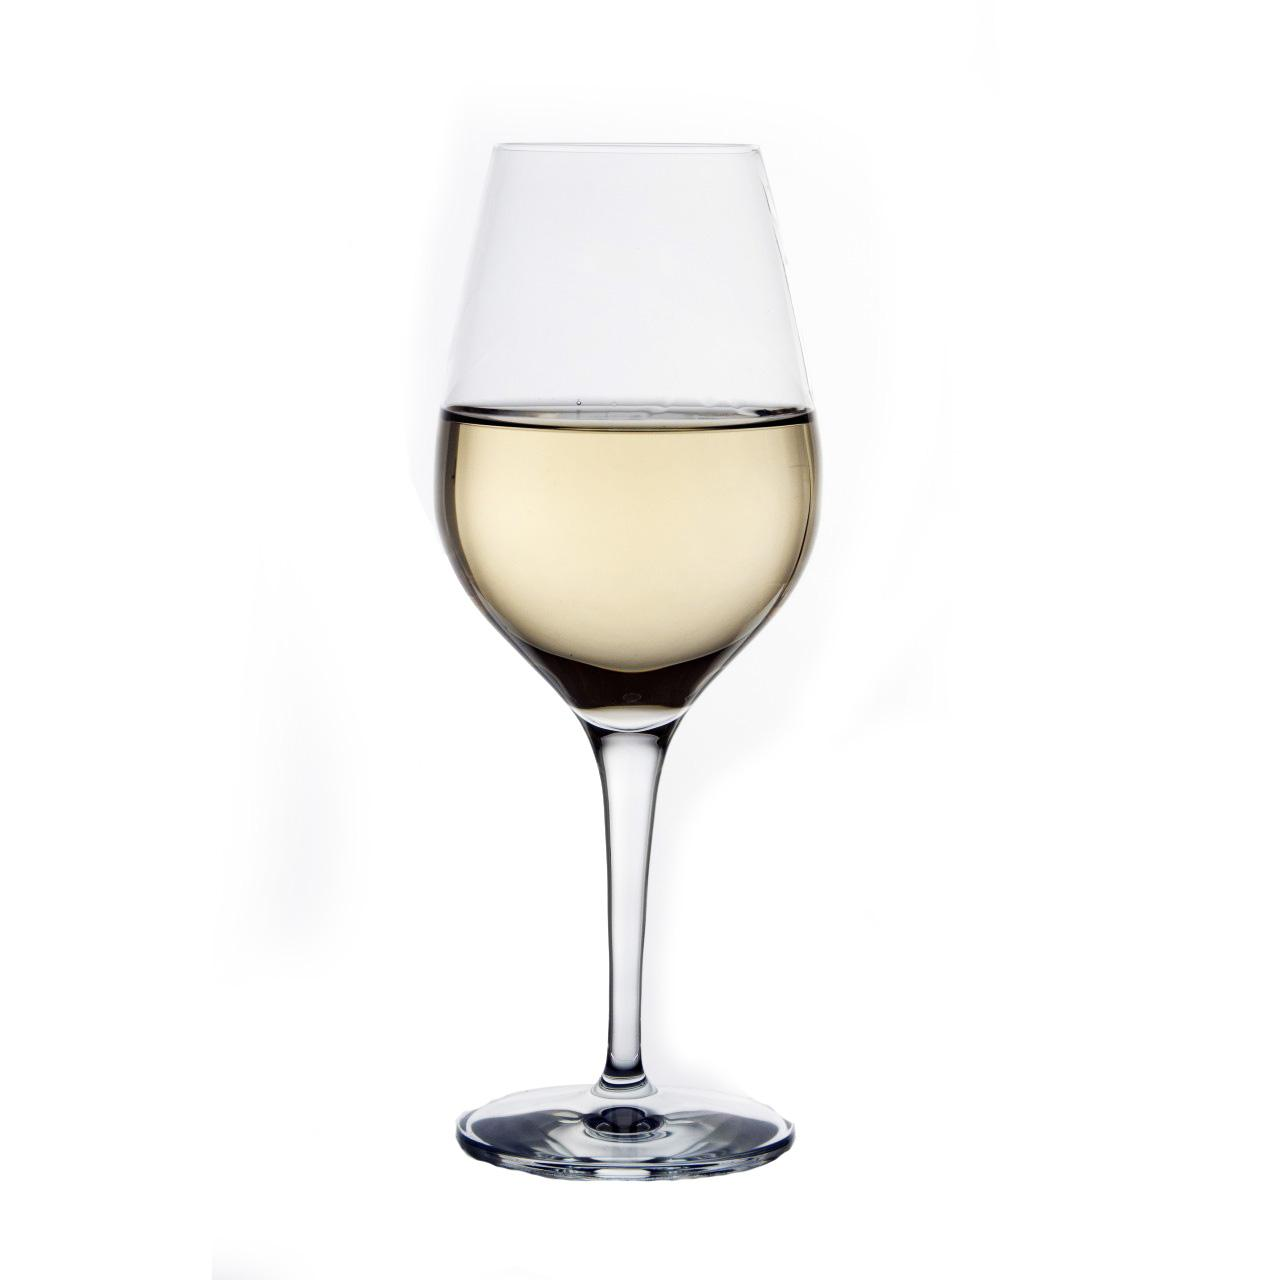 Goblet Style Wine Glasses Clear Glass Wine Bottles Images Images Of Clear Glass